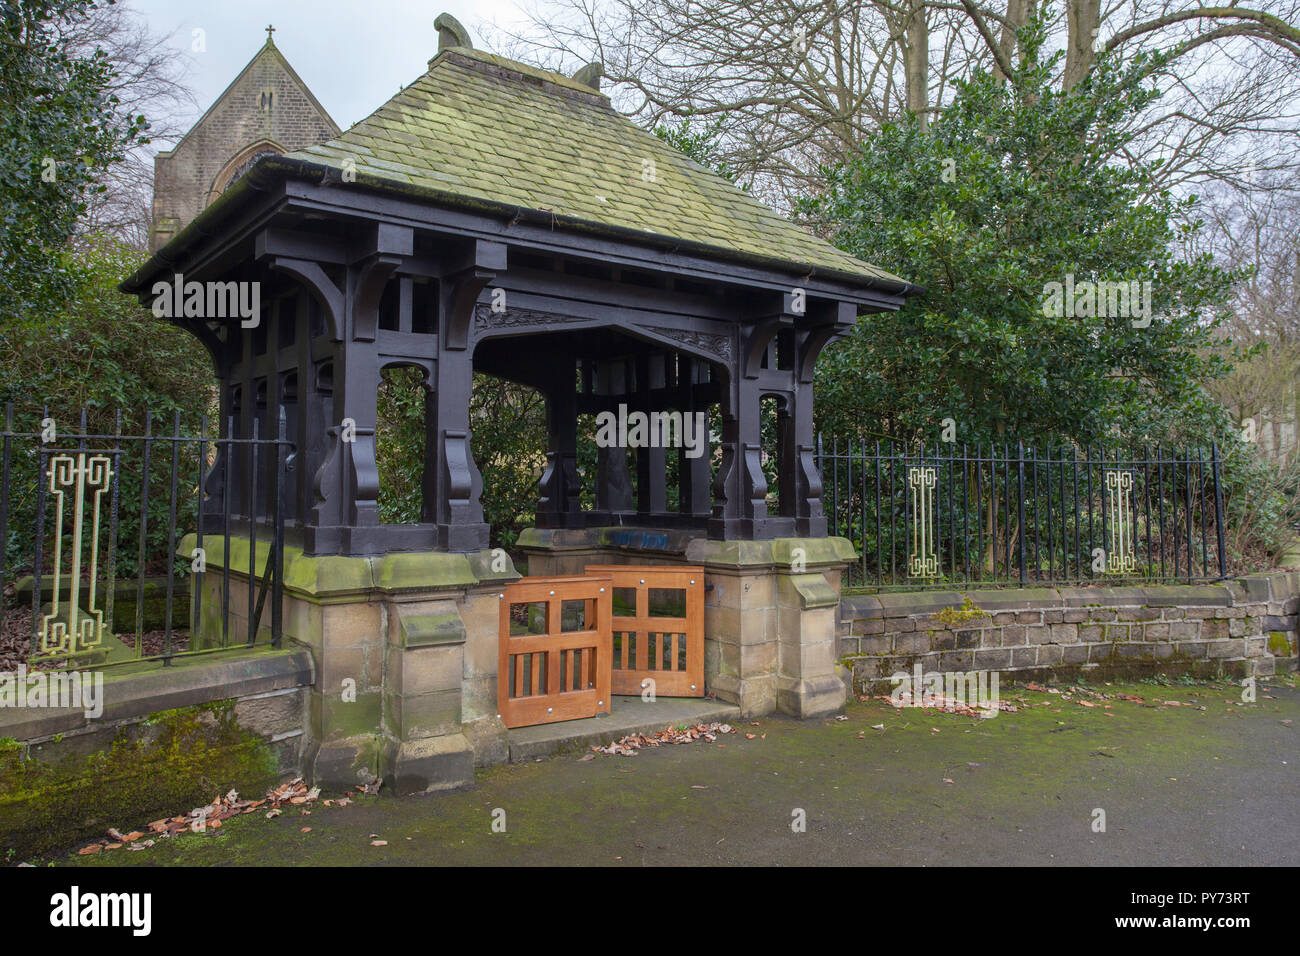 The lych gate of St. Bartholomew's Church in Marsden, West Yorkshire - Stock Image